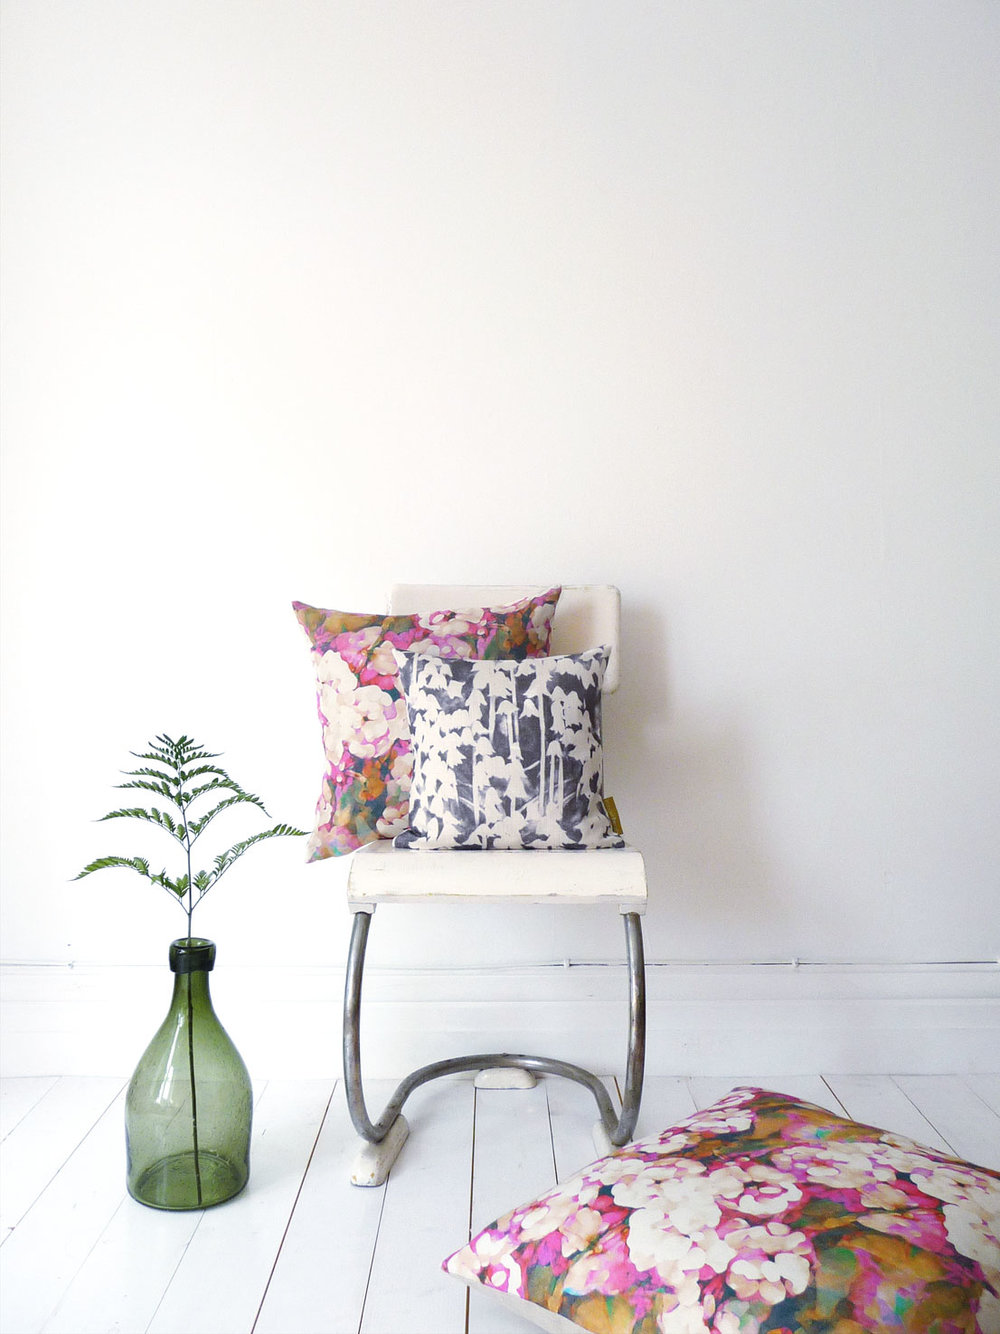 Imogen Heath Rosa pink and Bluebell luxury interior fabrics as cushions bringing colour to a neutral space